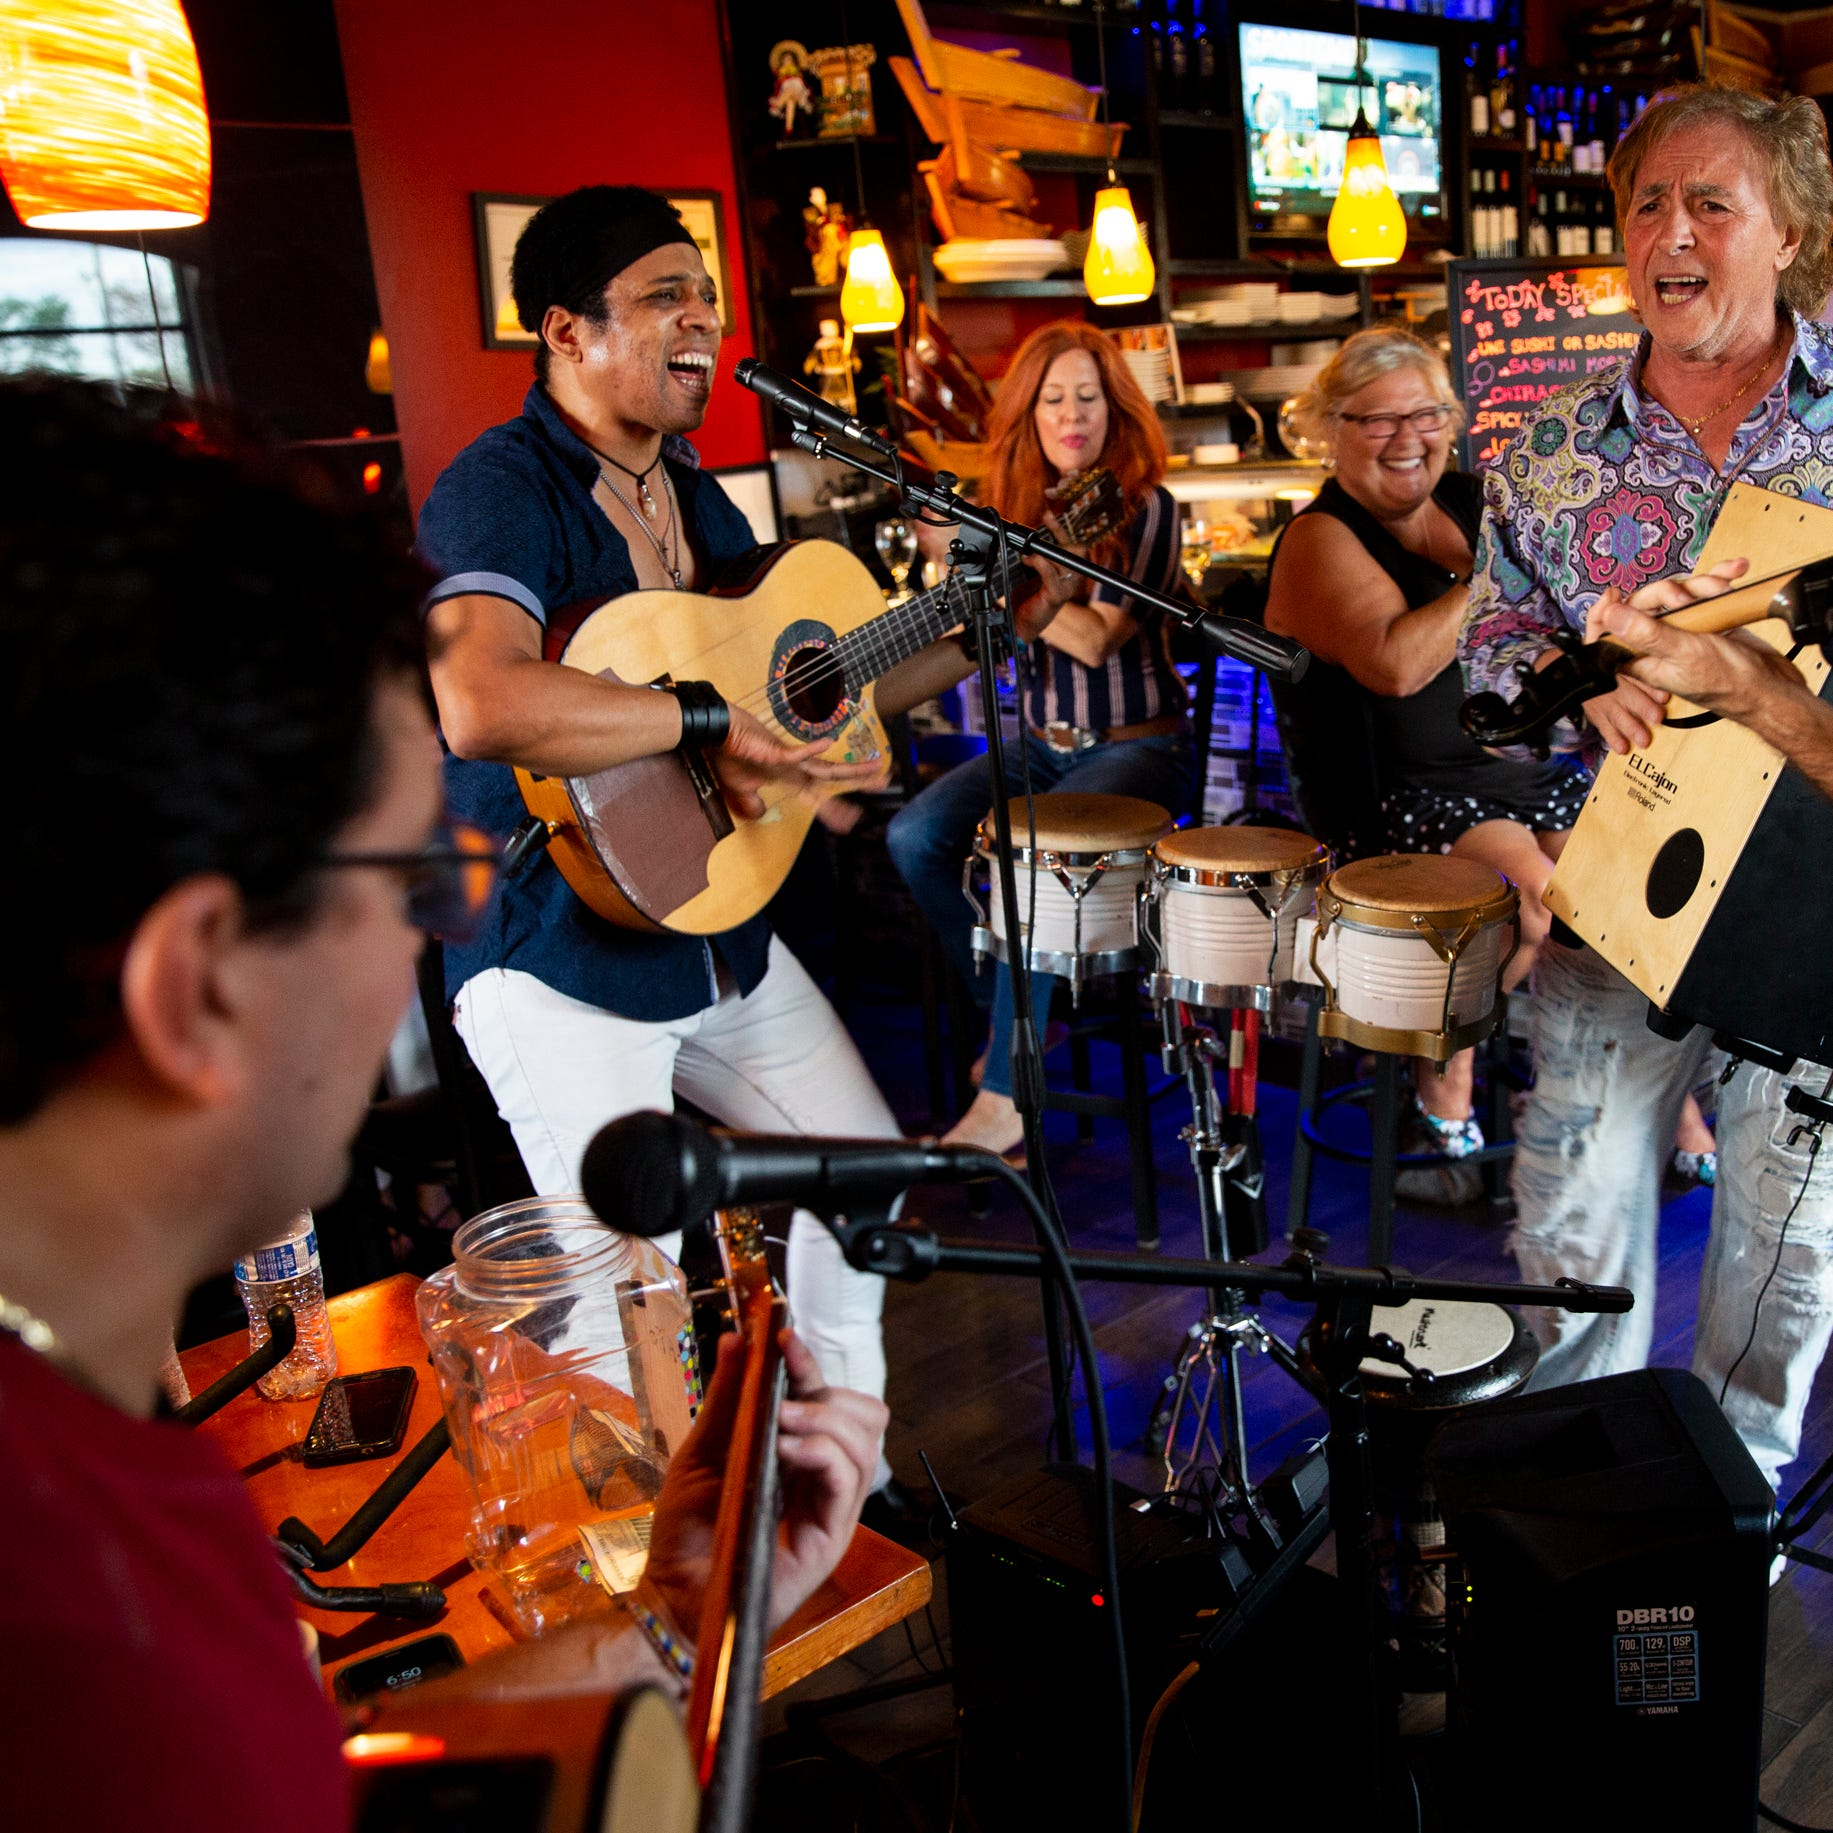 El Gato Solea and friends bring global music to a Naples sushi spot